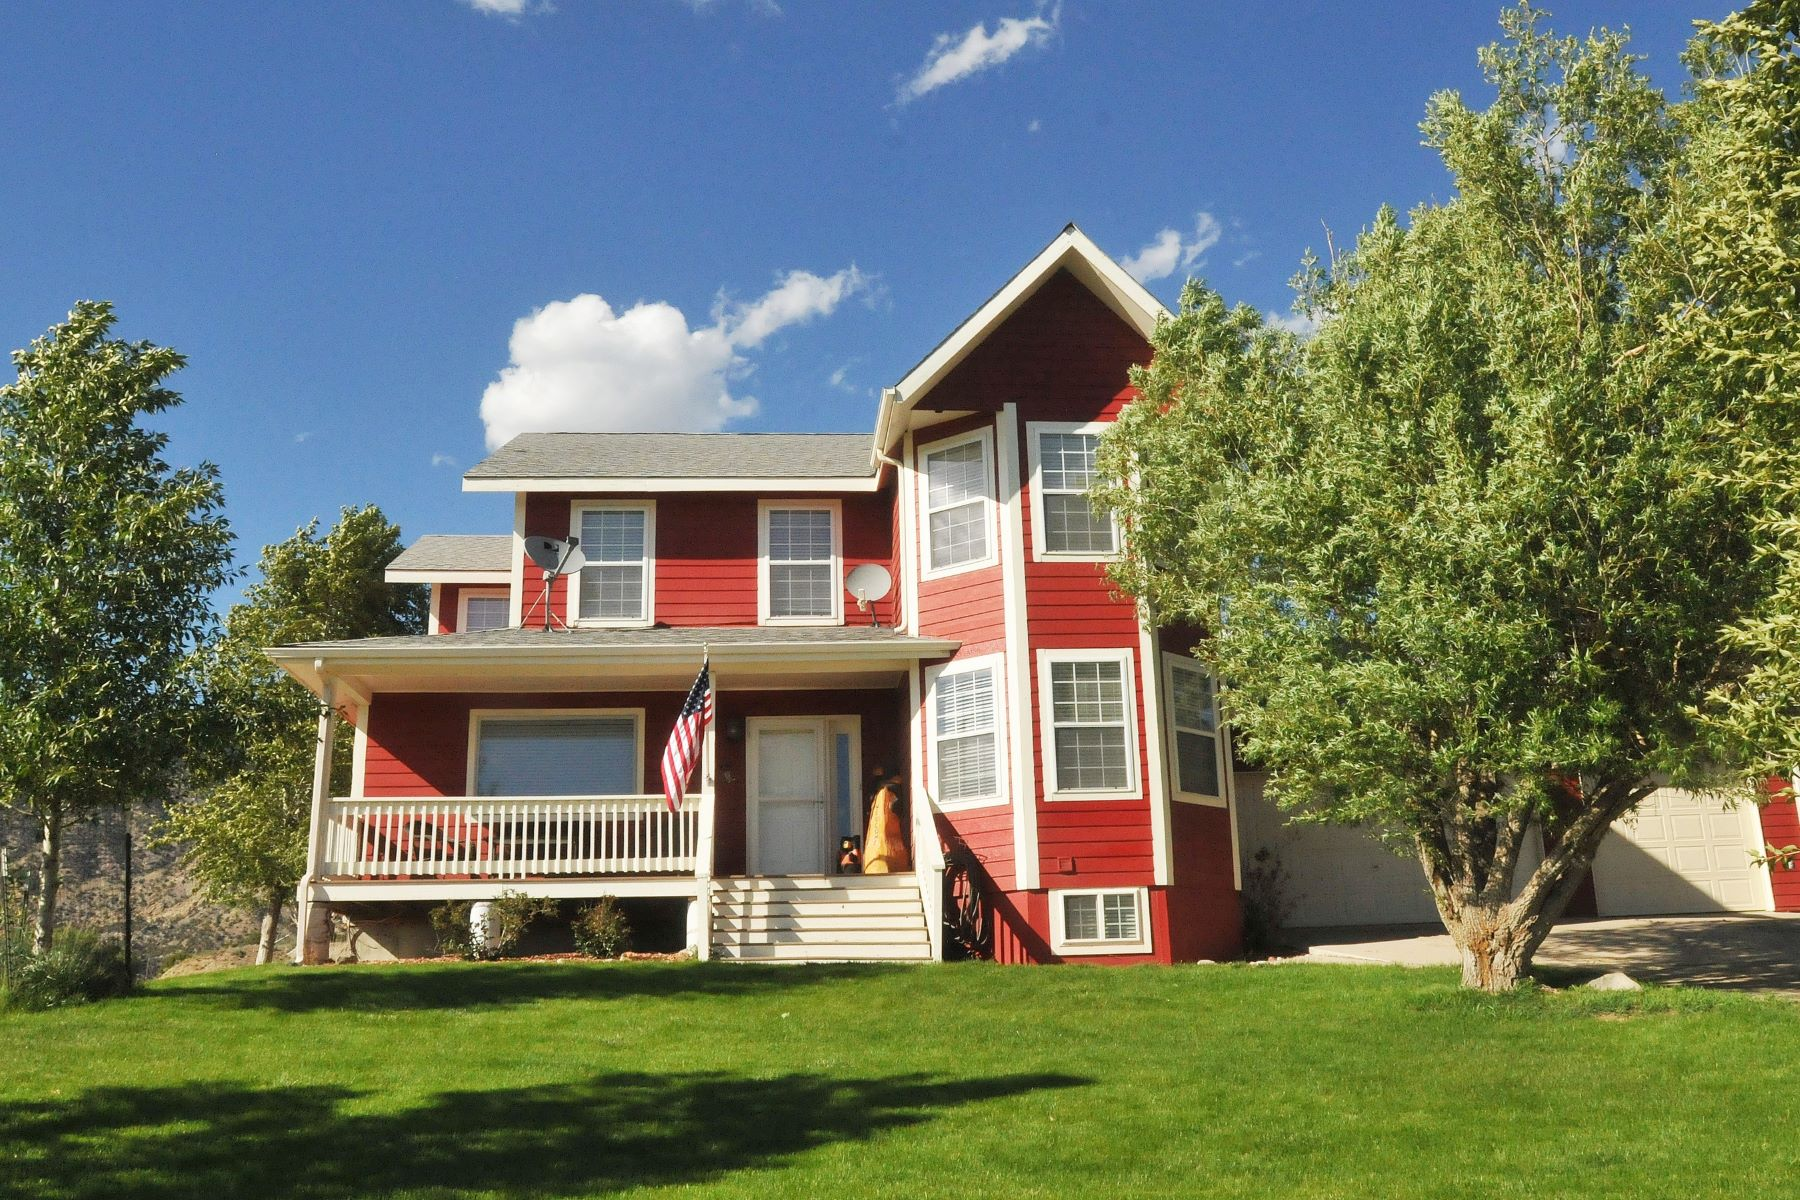 Single Family Home for Sale at Antler's Orchard Acreage 1450 County Road 259 Silt, Colorado, 81652 United States